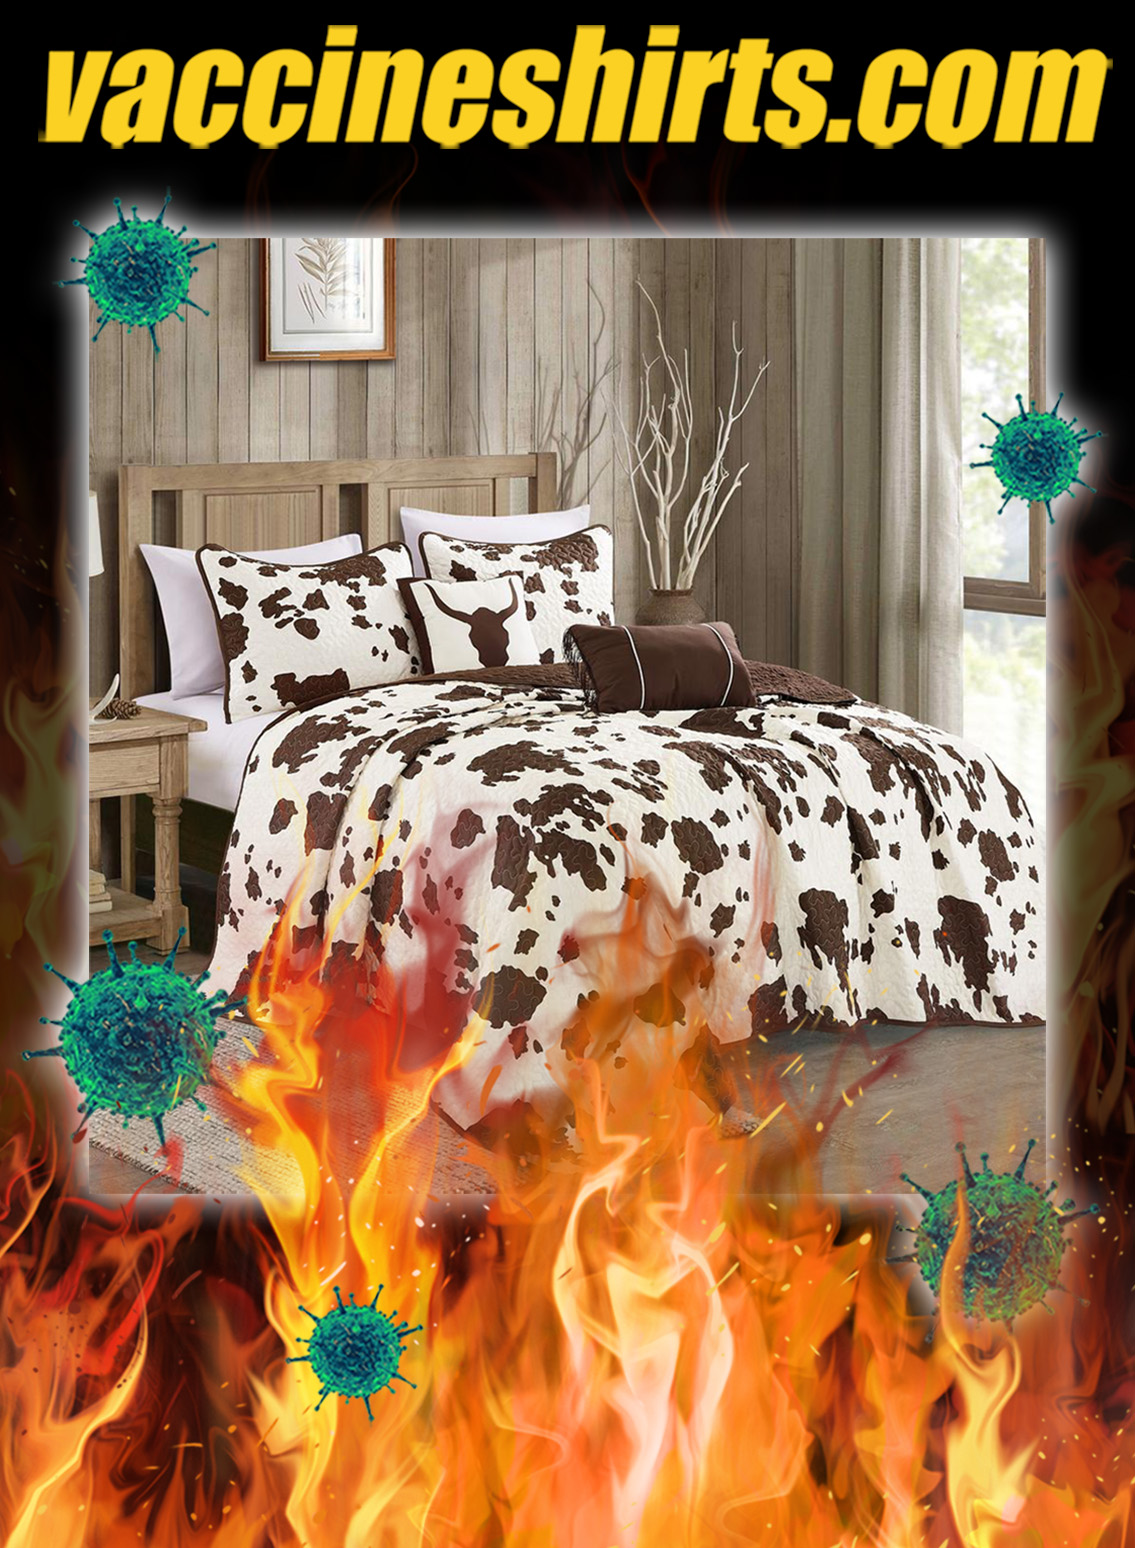 Rustic cowhide brown cow skull quilt bedding set - queen